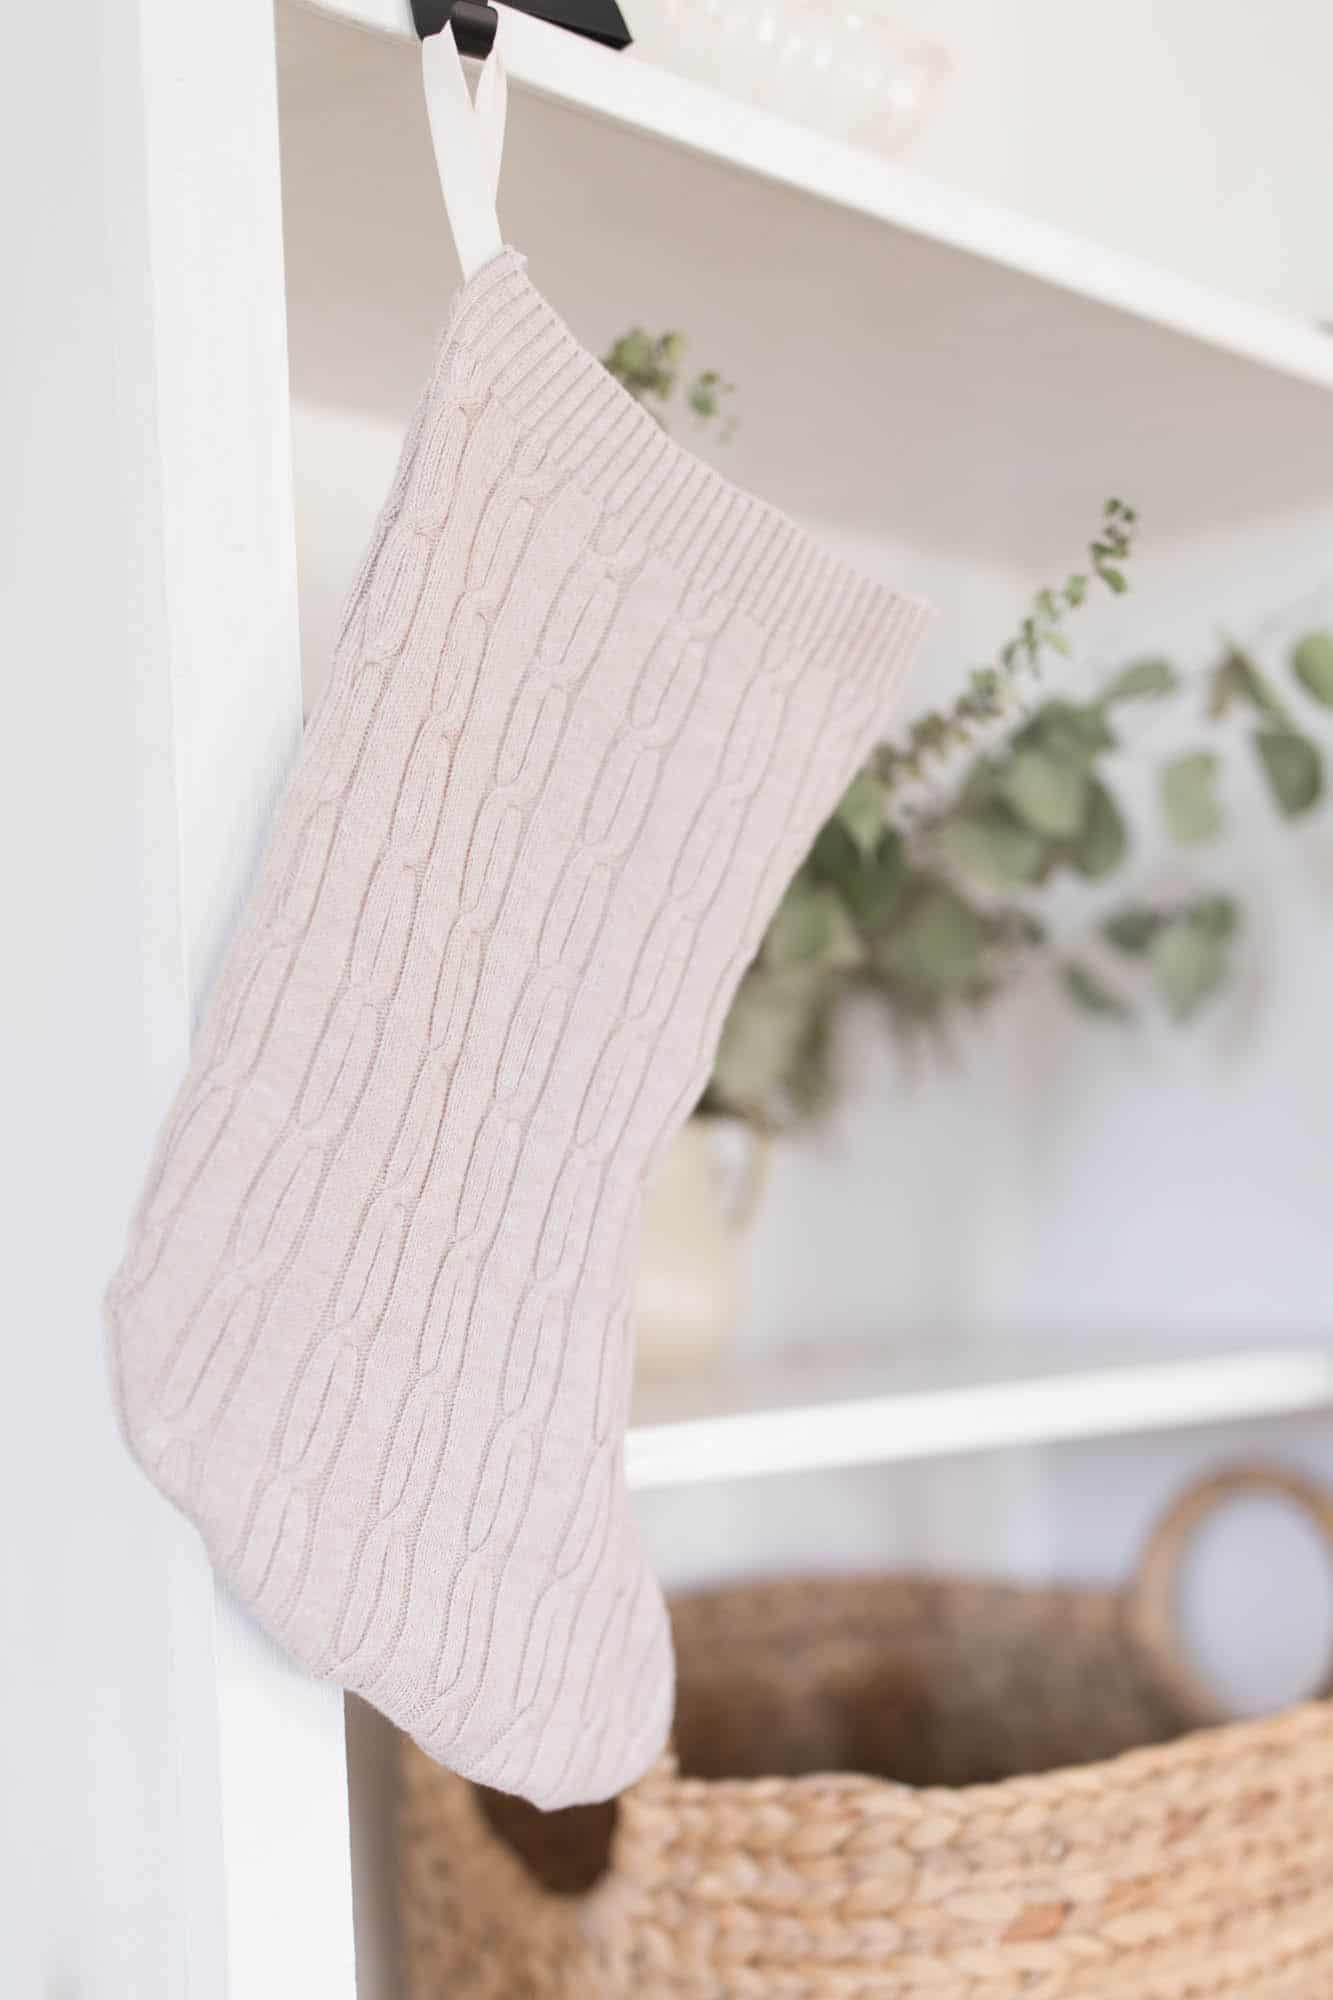 DIY Stockings from Sweaters Sewing Video Tutorial